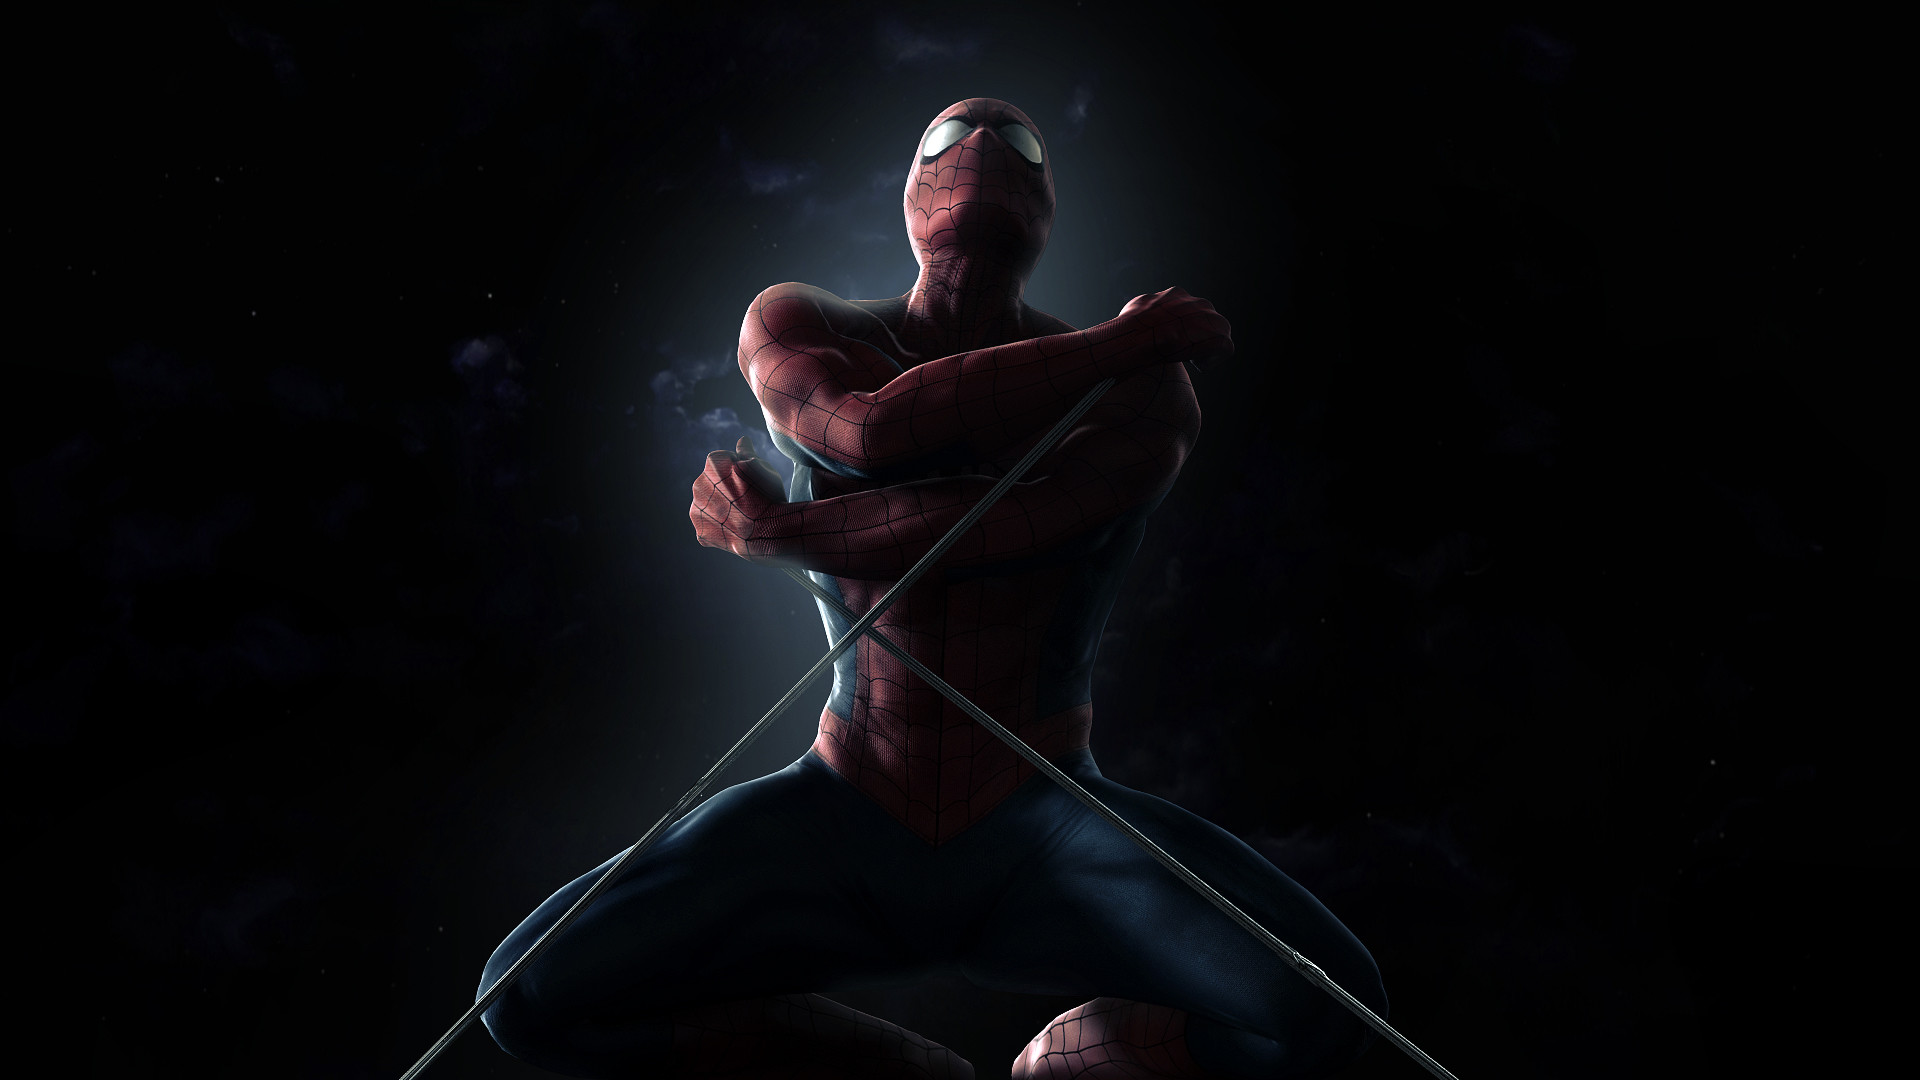 1920x1080 spider man wallpaper hd wallpapersafari; free spiderman widescreen wallpaper  wallpapersafari; spiderman wallpaper 3d ...